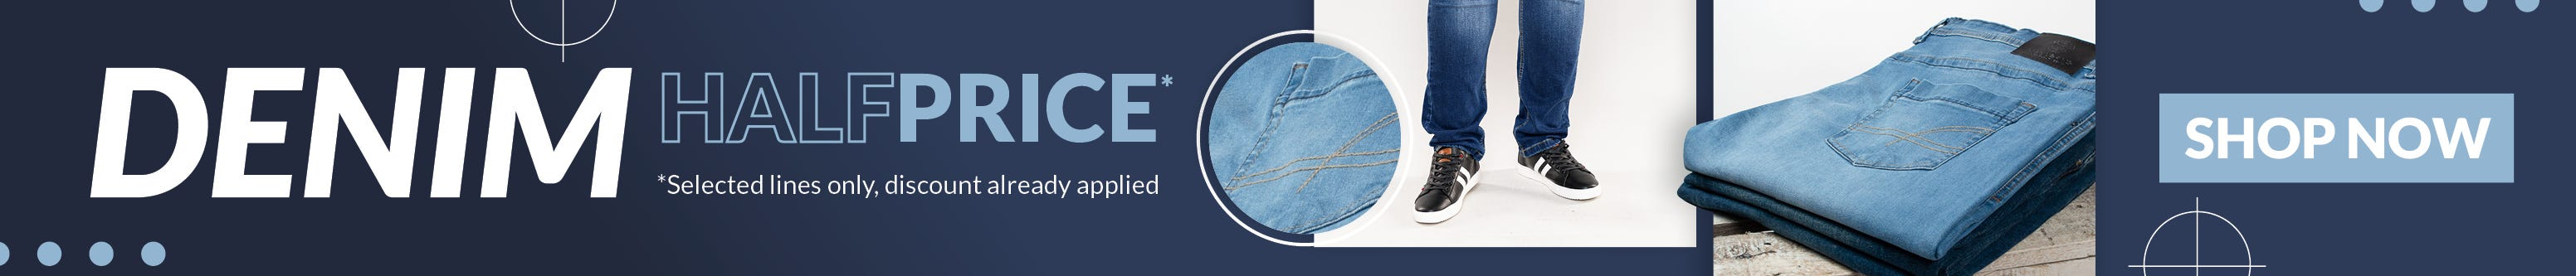 Big Clothing 4 U - Half Price Denim